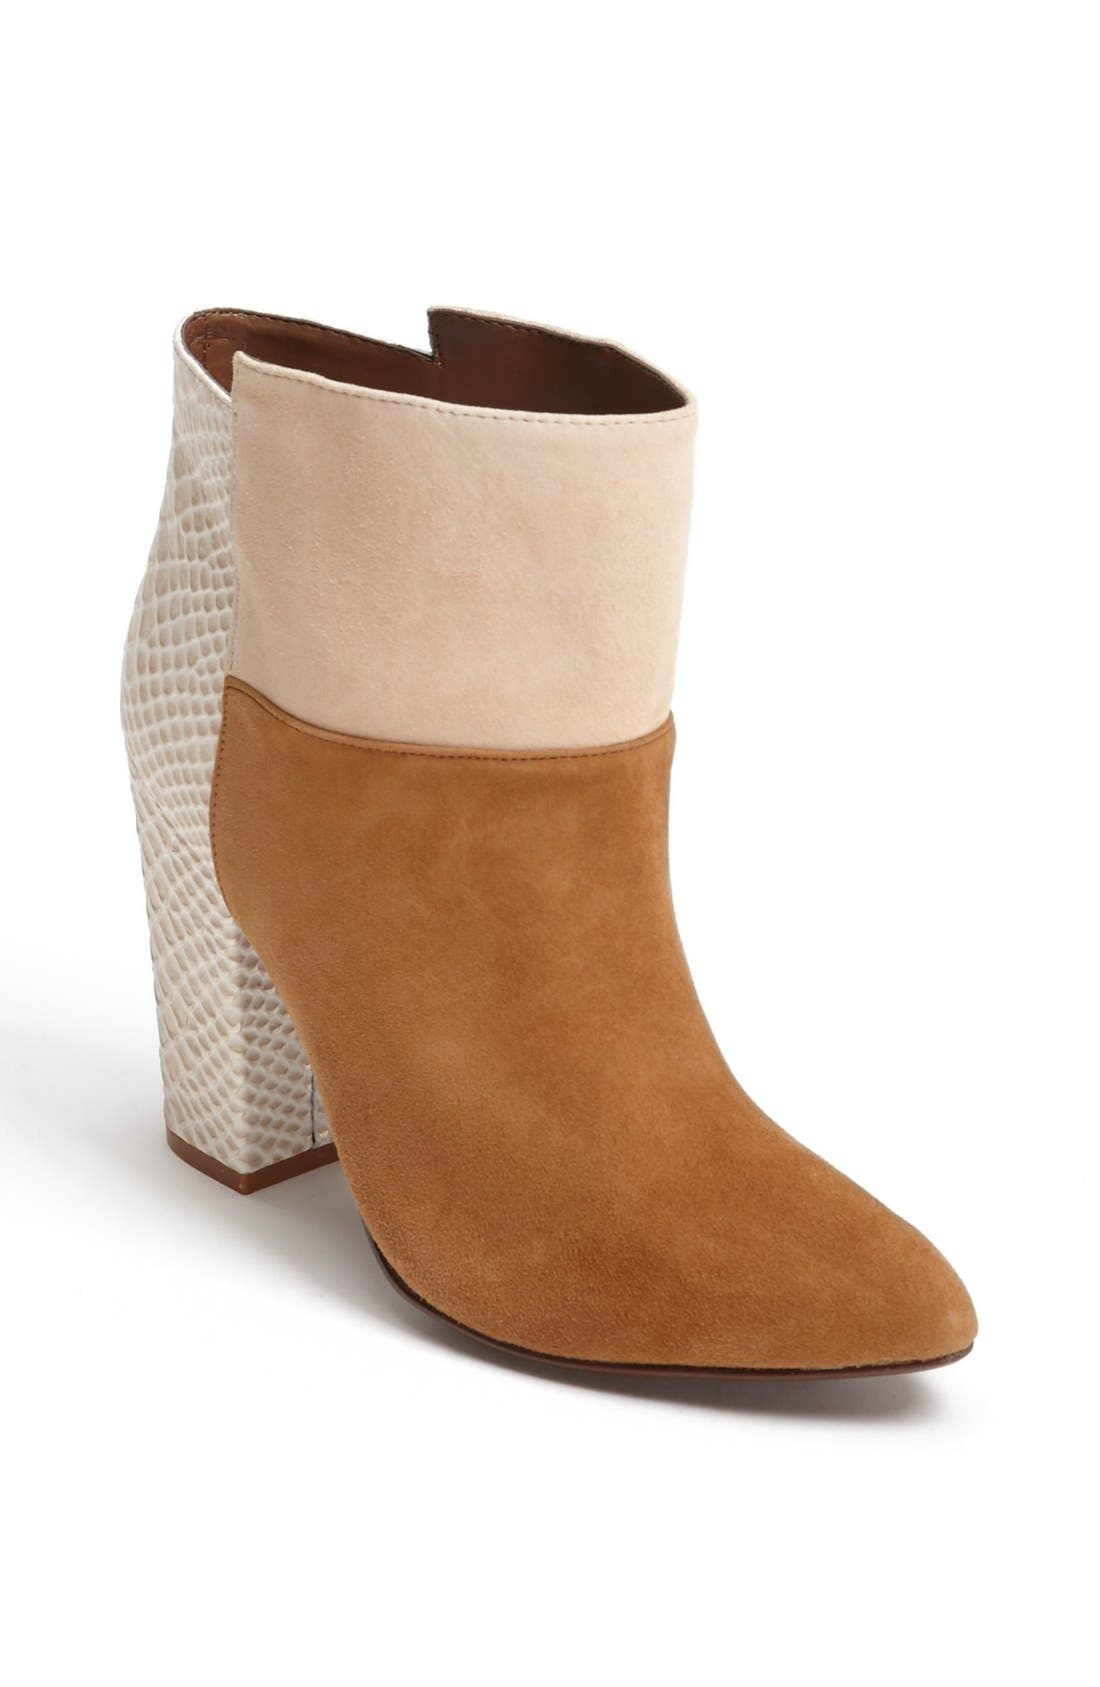 Alternate Image 1 Selected - Kristin Cavallari Suede Ankle Bootie